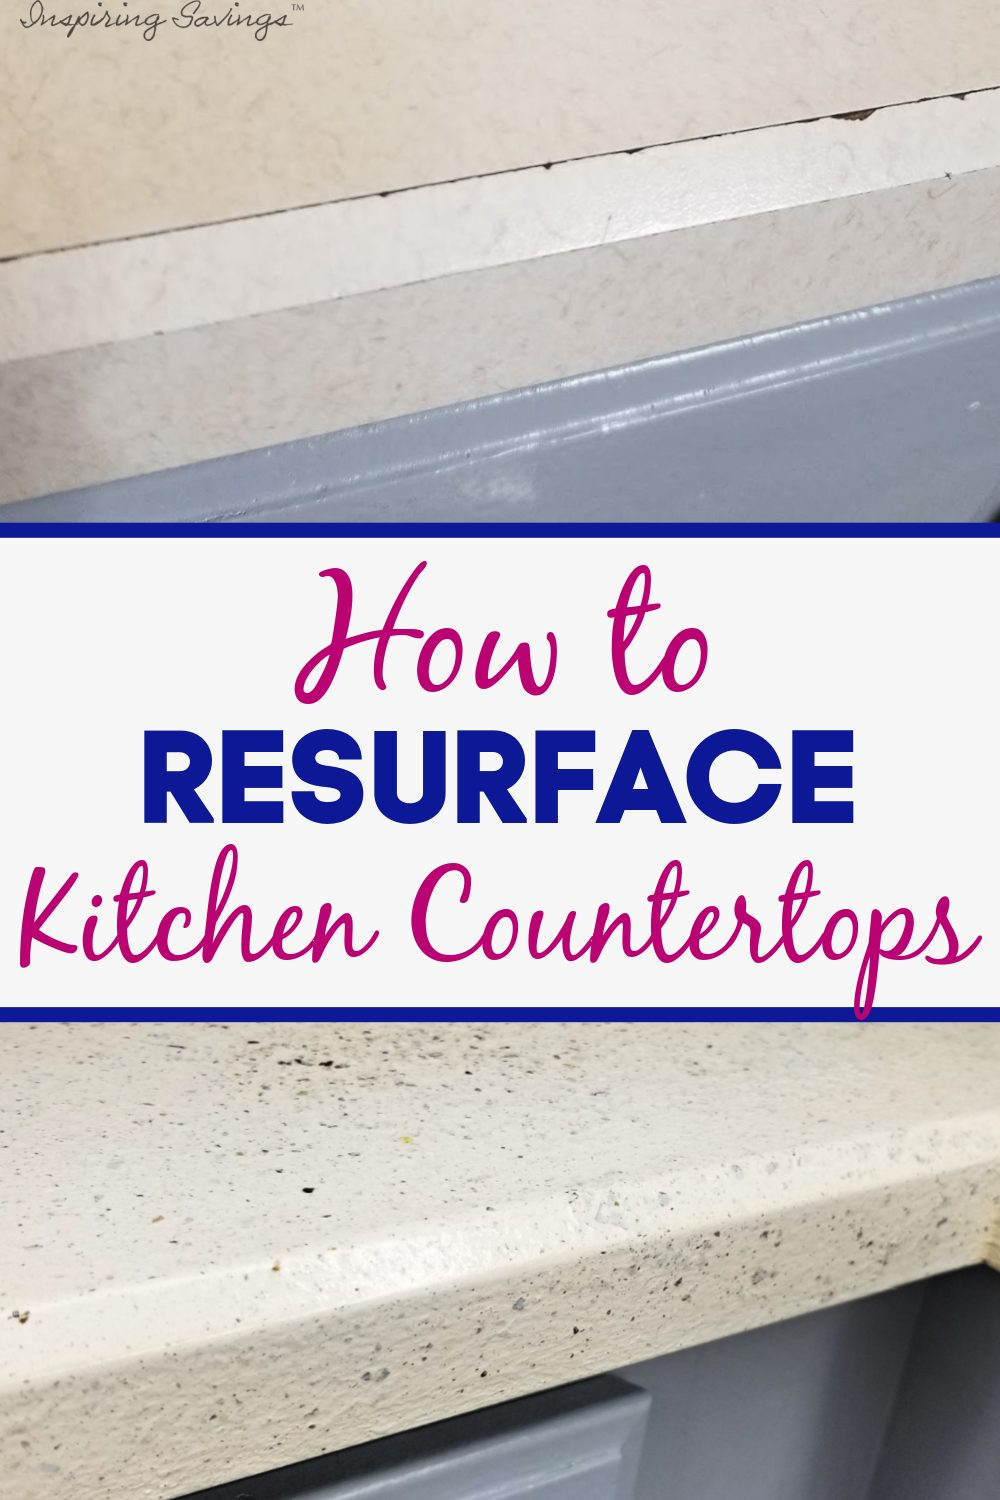 Before & after pictures of resurfacing kitchen countertops -How to resurface kitchen countertops